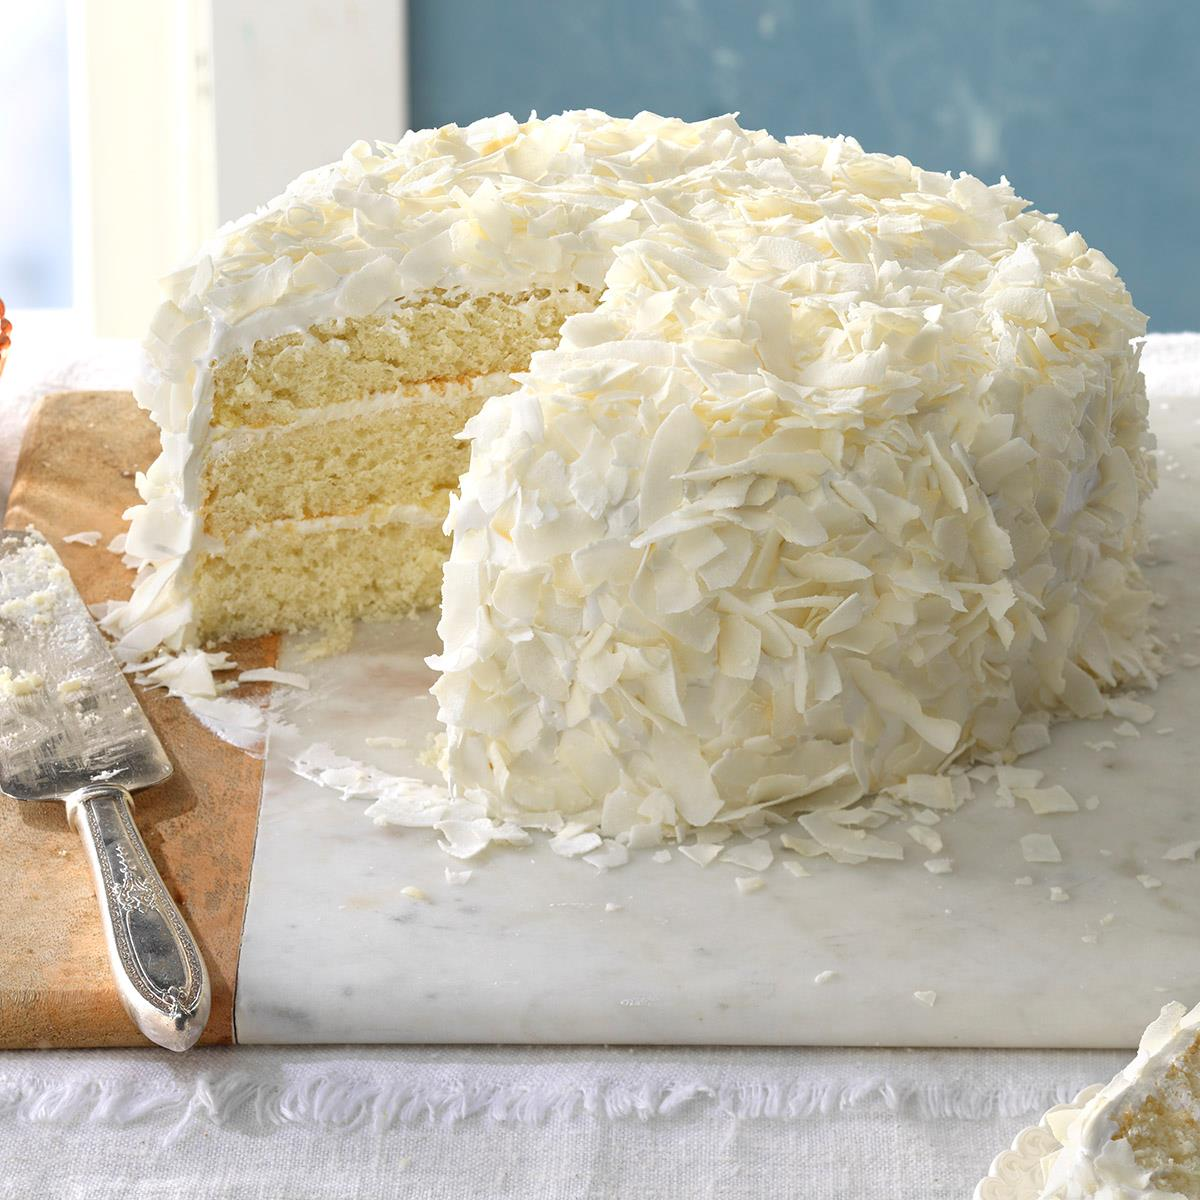 Coconut Cake Recipe - Cooking with Paula Deen